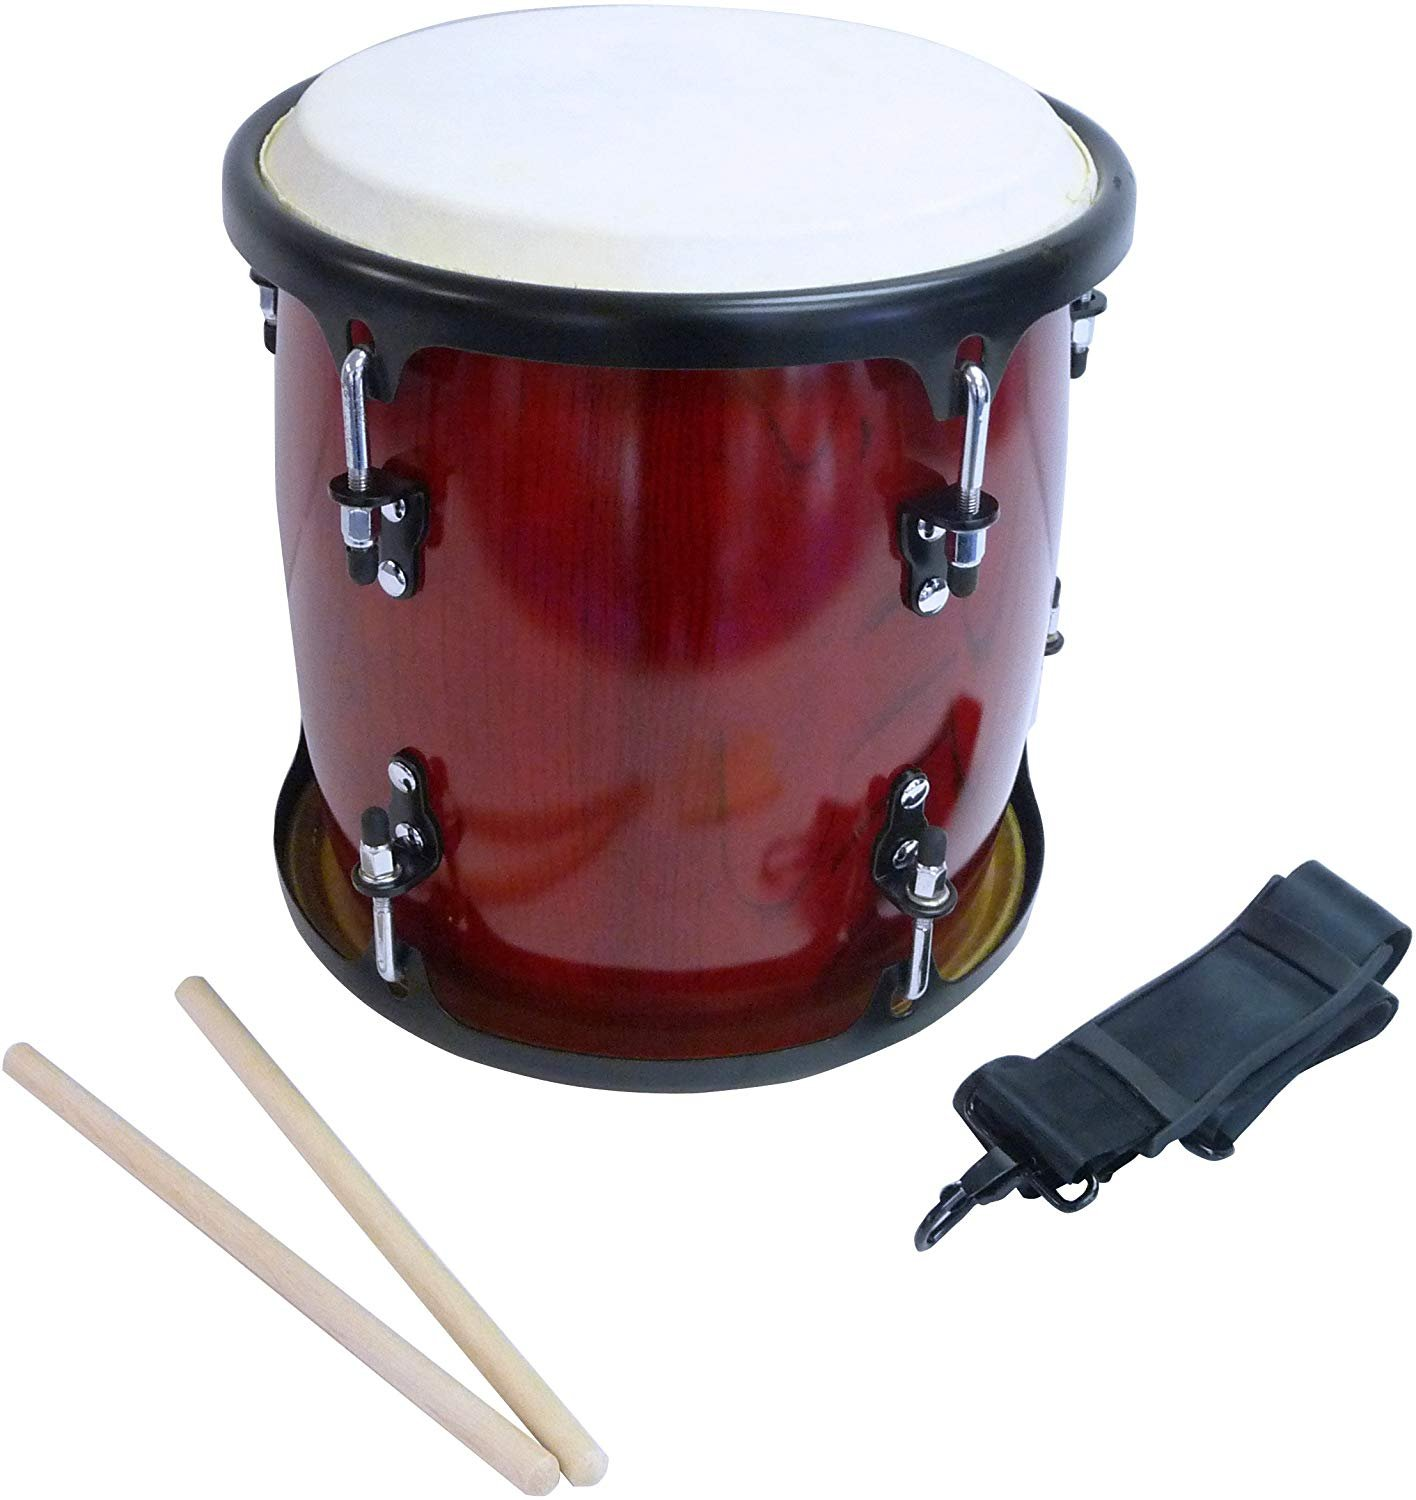 Suzuki TB-2 Two Headed Tambour Drum with Stand